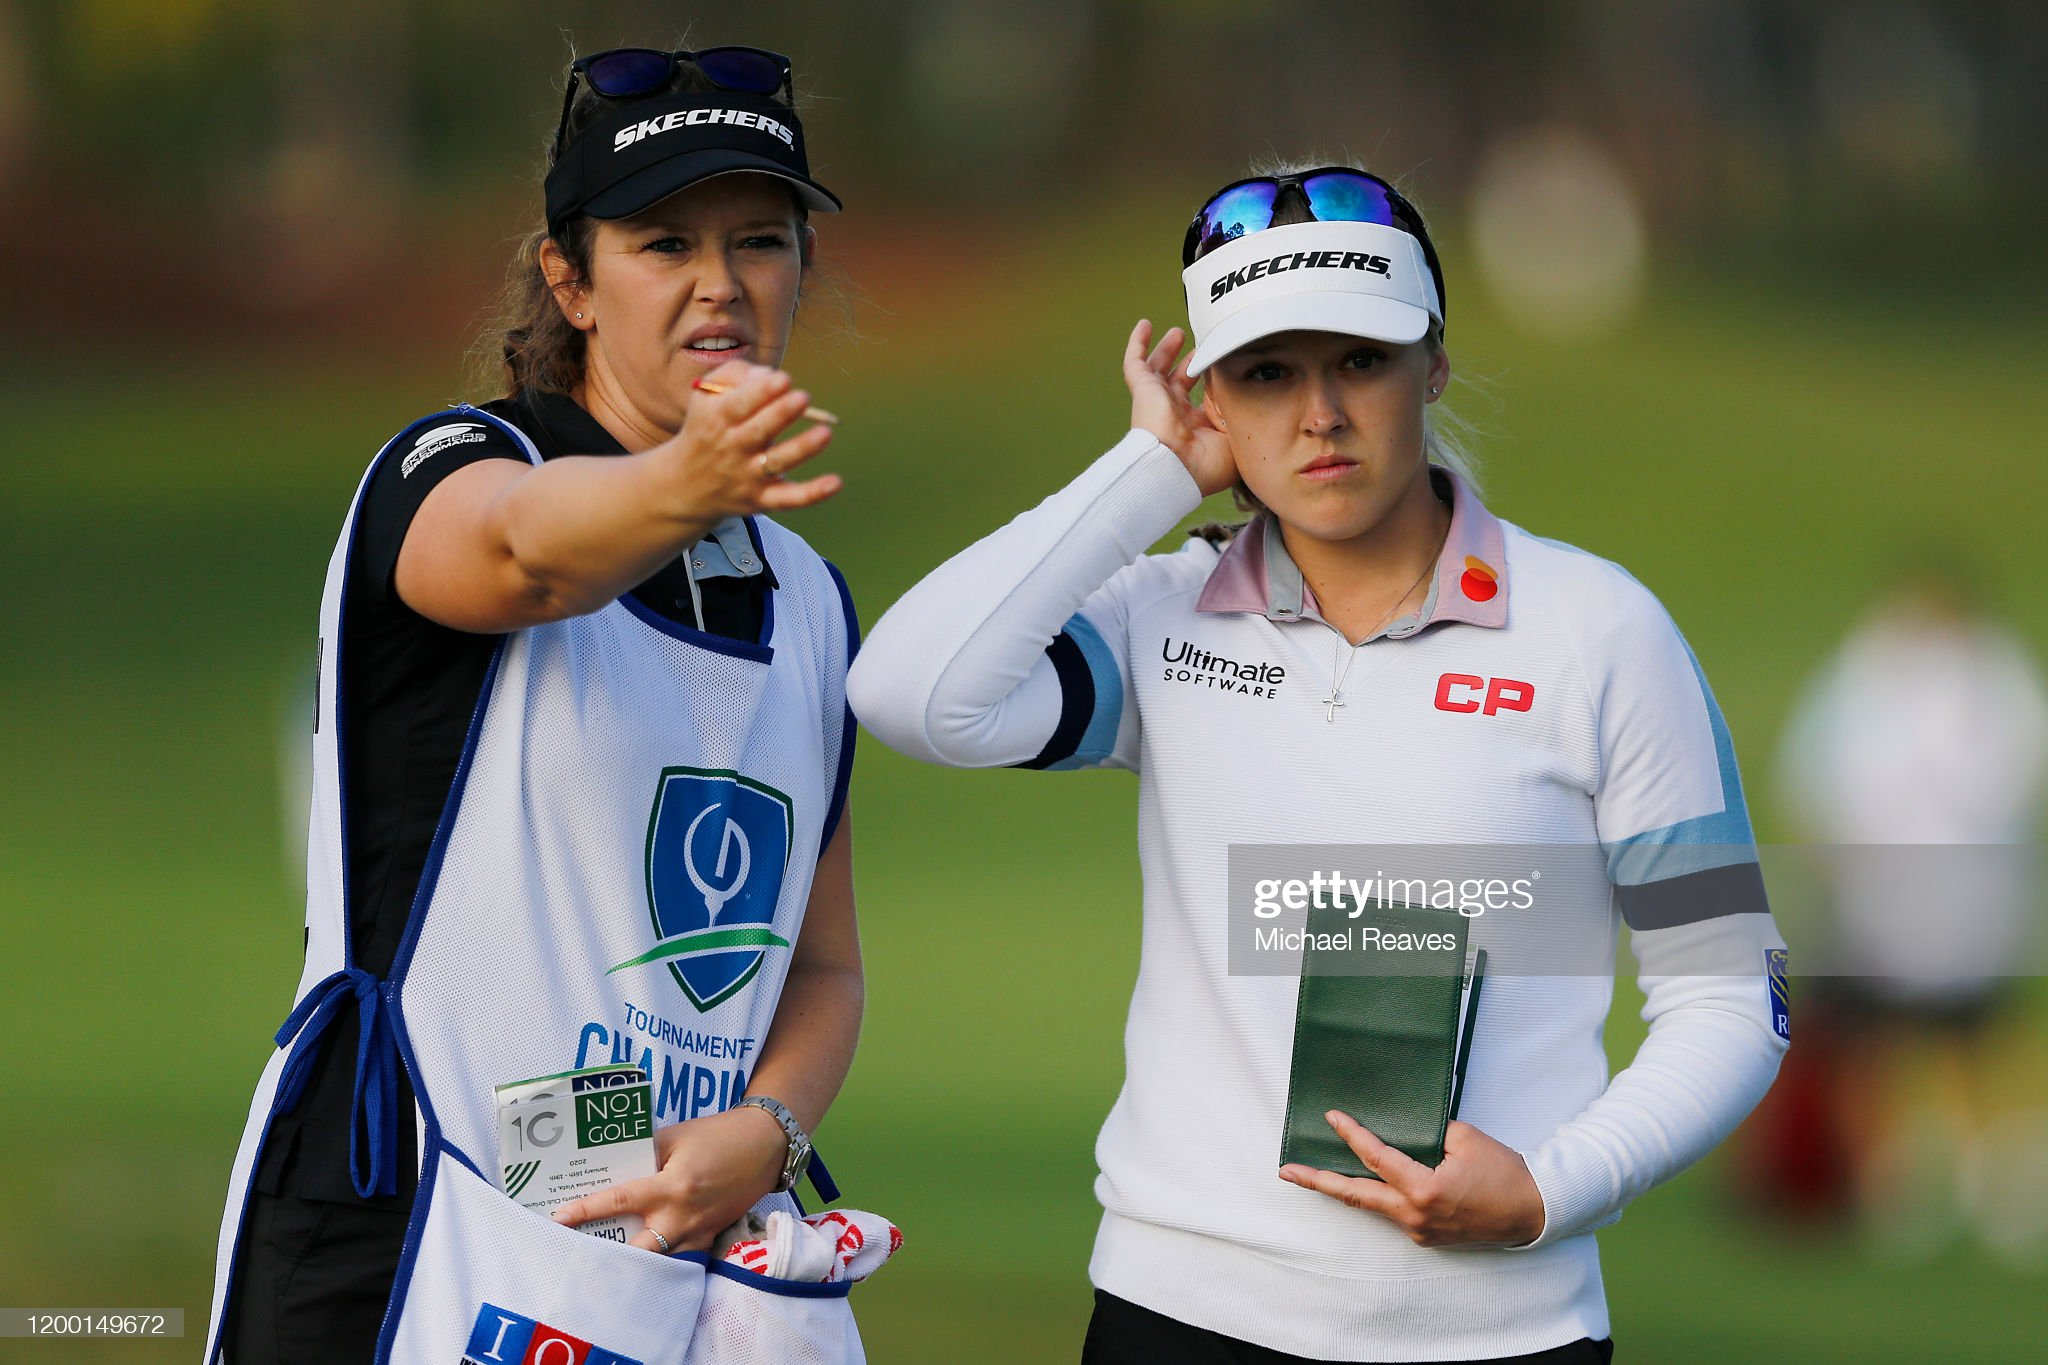 https://media.gettyimages.com/photos/brooke-henderson-of-canada-looks-over-her-second-shot-on-the-fourth-picture-id1200149672?s=2048x2048